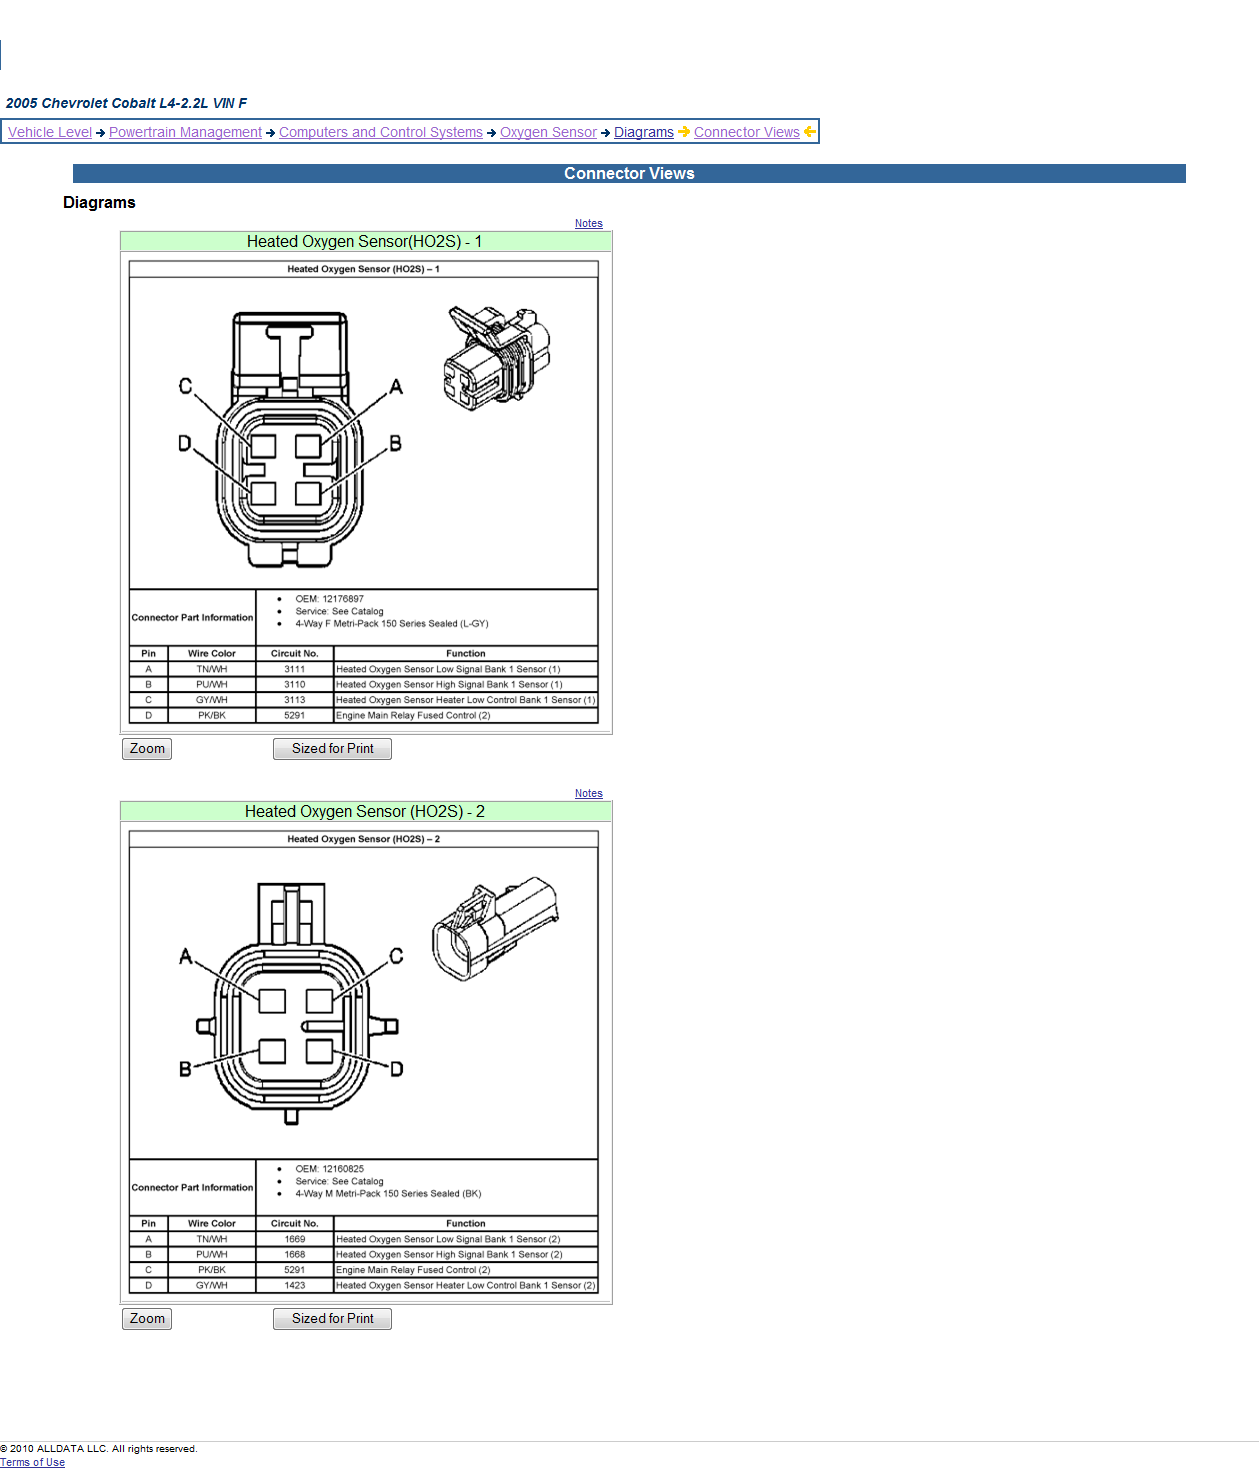 a4deda12a4f6d49137b2c3198e0ce0ff jeep o2 sensor wiring diagram audi oxygen sensor wire diagram  at bakdesigns.co